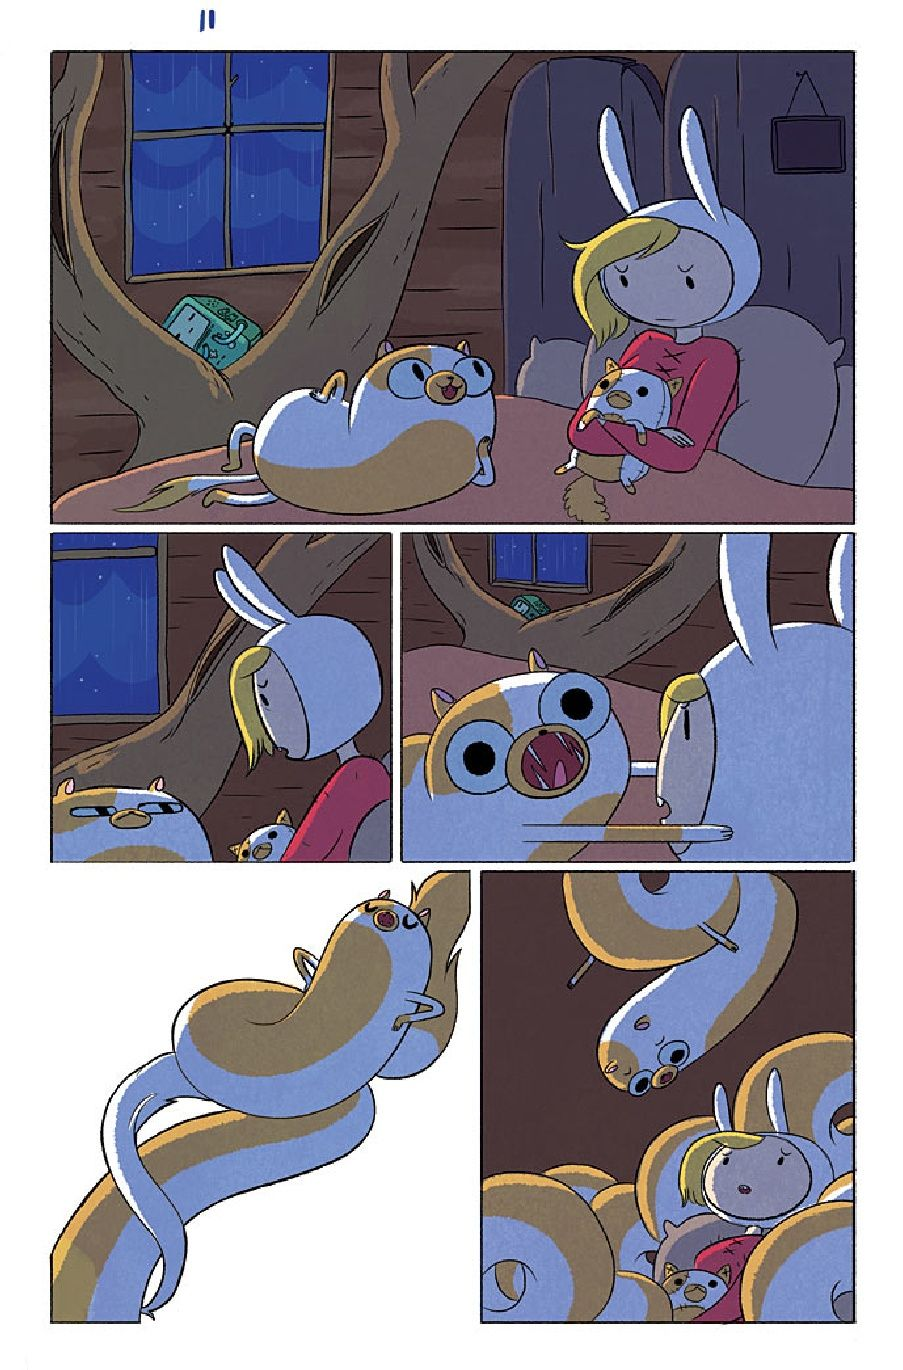 """Adventure Time: Fionna and Cake"" #1 [sample]"